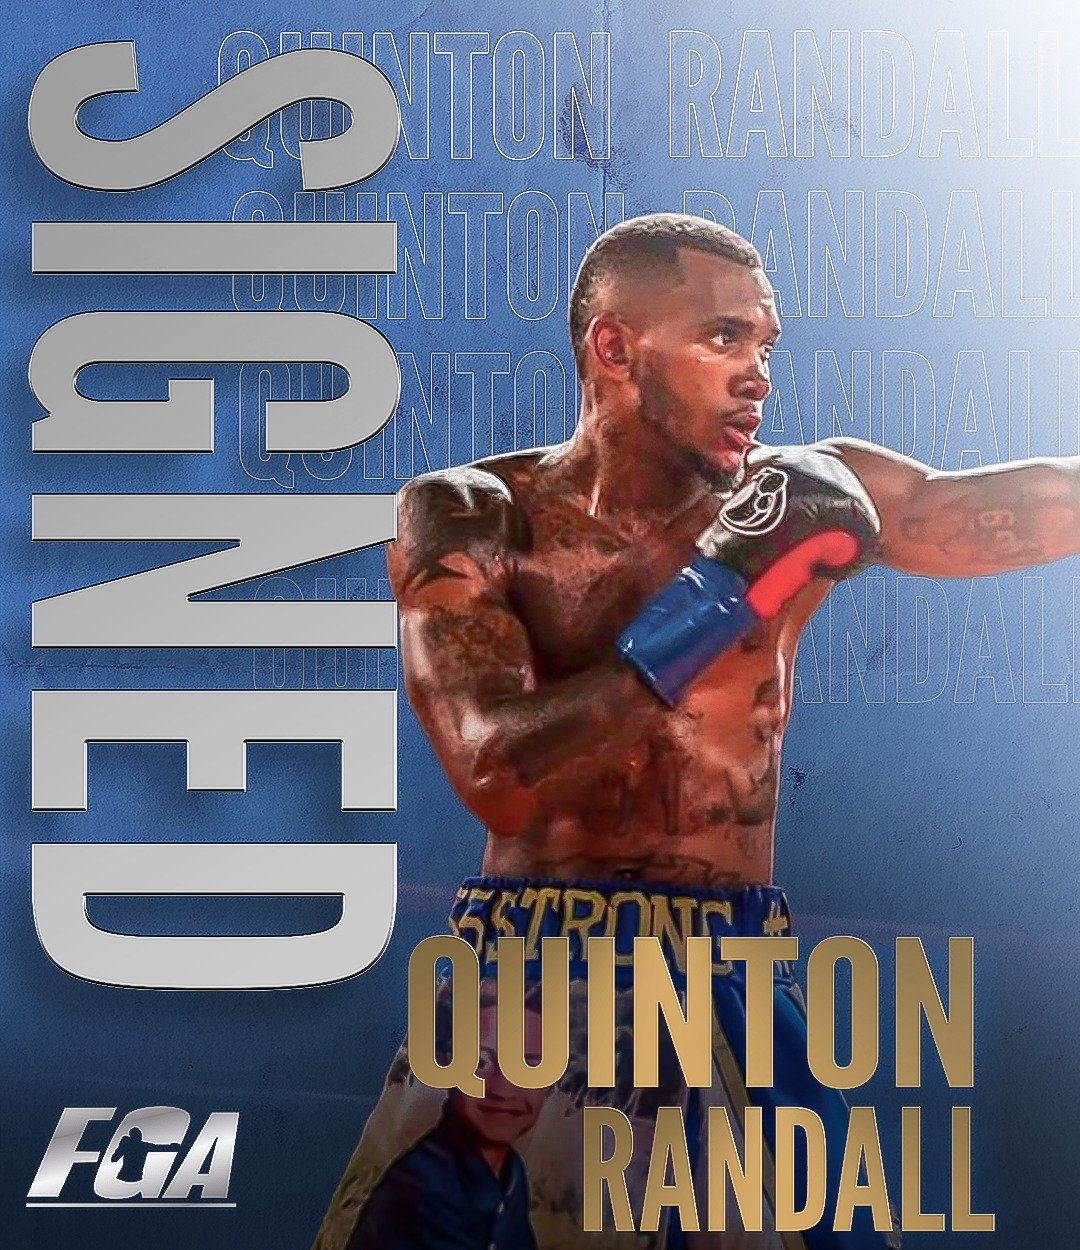 Press Room - Peter Kahn's Fight Game Advisors has signed Top Welterweight Prospect, Quinton Randall, (6-0, 2 K.O.s) of Houston, TX, to an exclusive managerial contract, it was announced today.